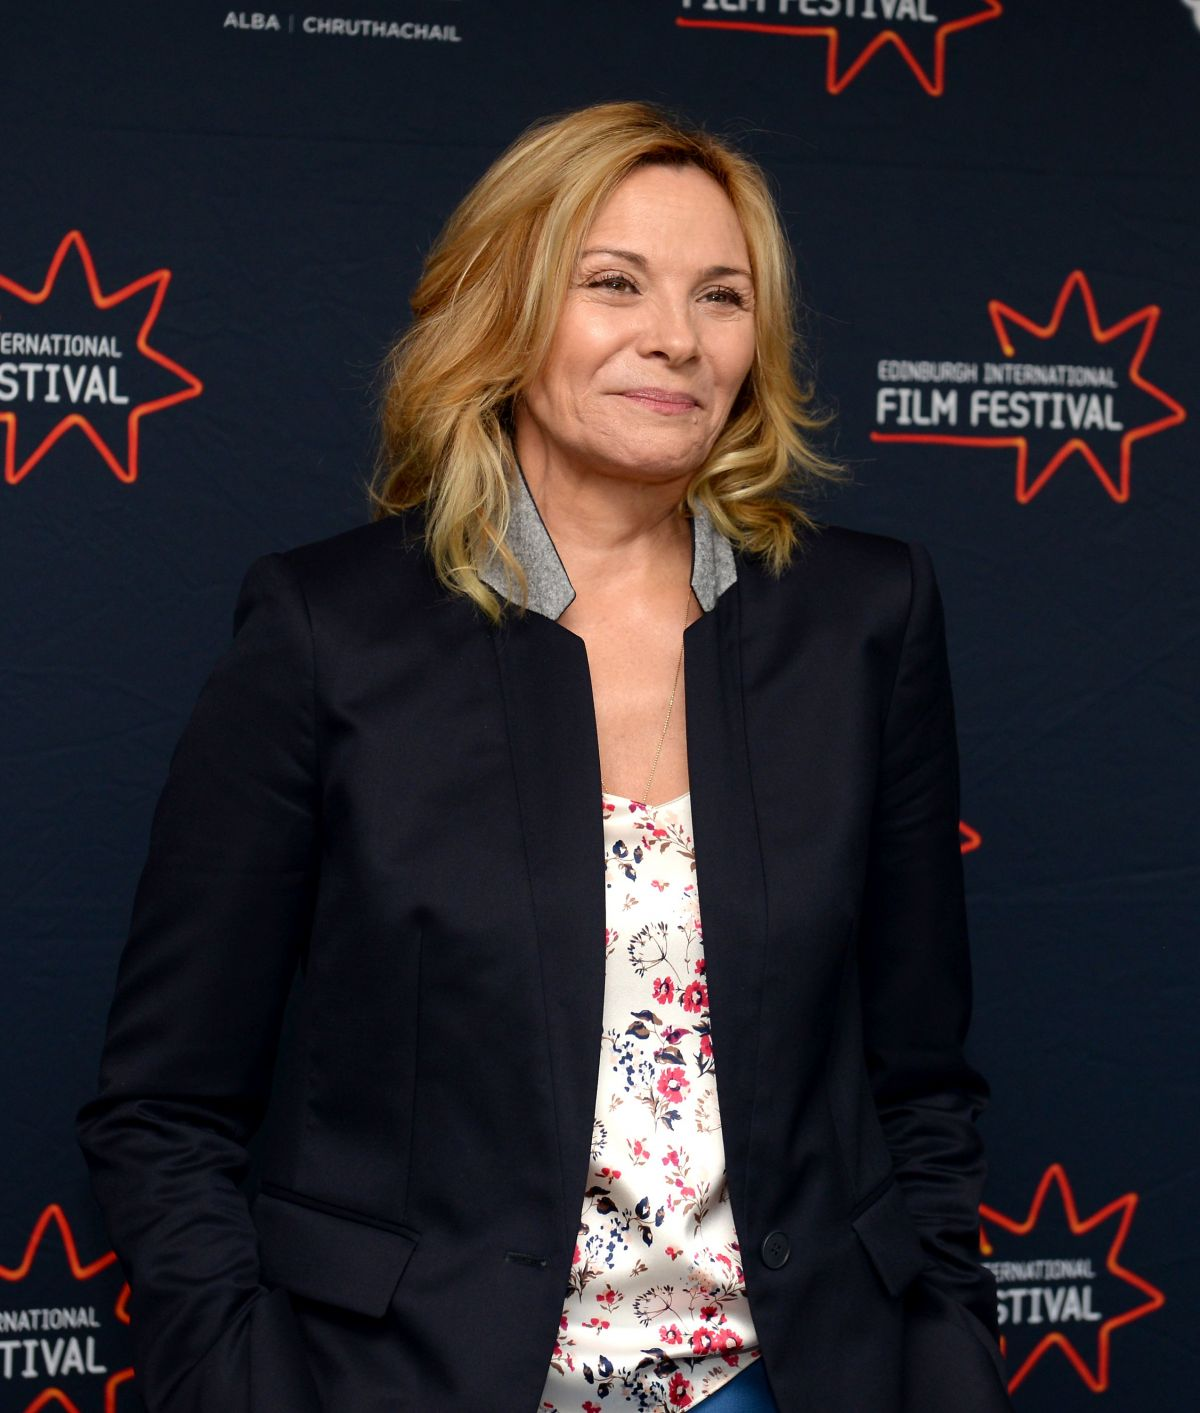 KIM CATTRALL at Edinburgh Film Festival Jury Photocall 06/17/2016 ...